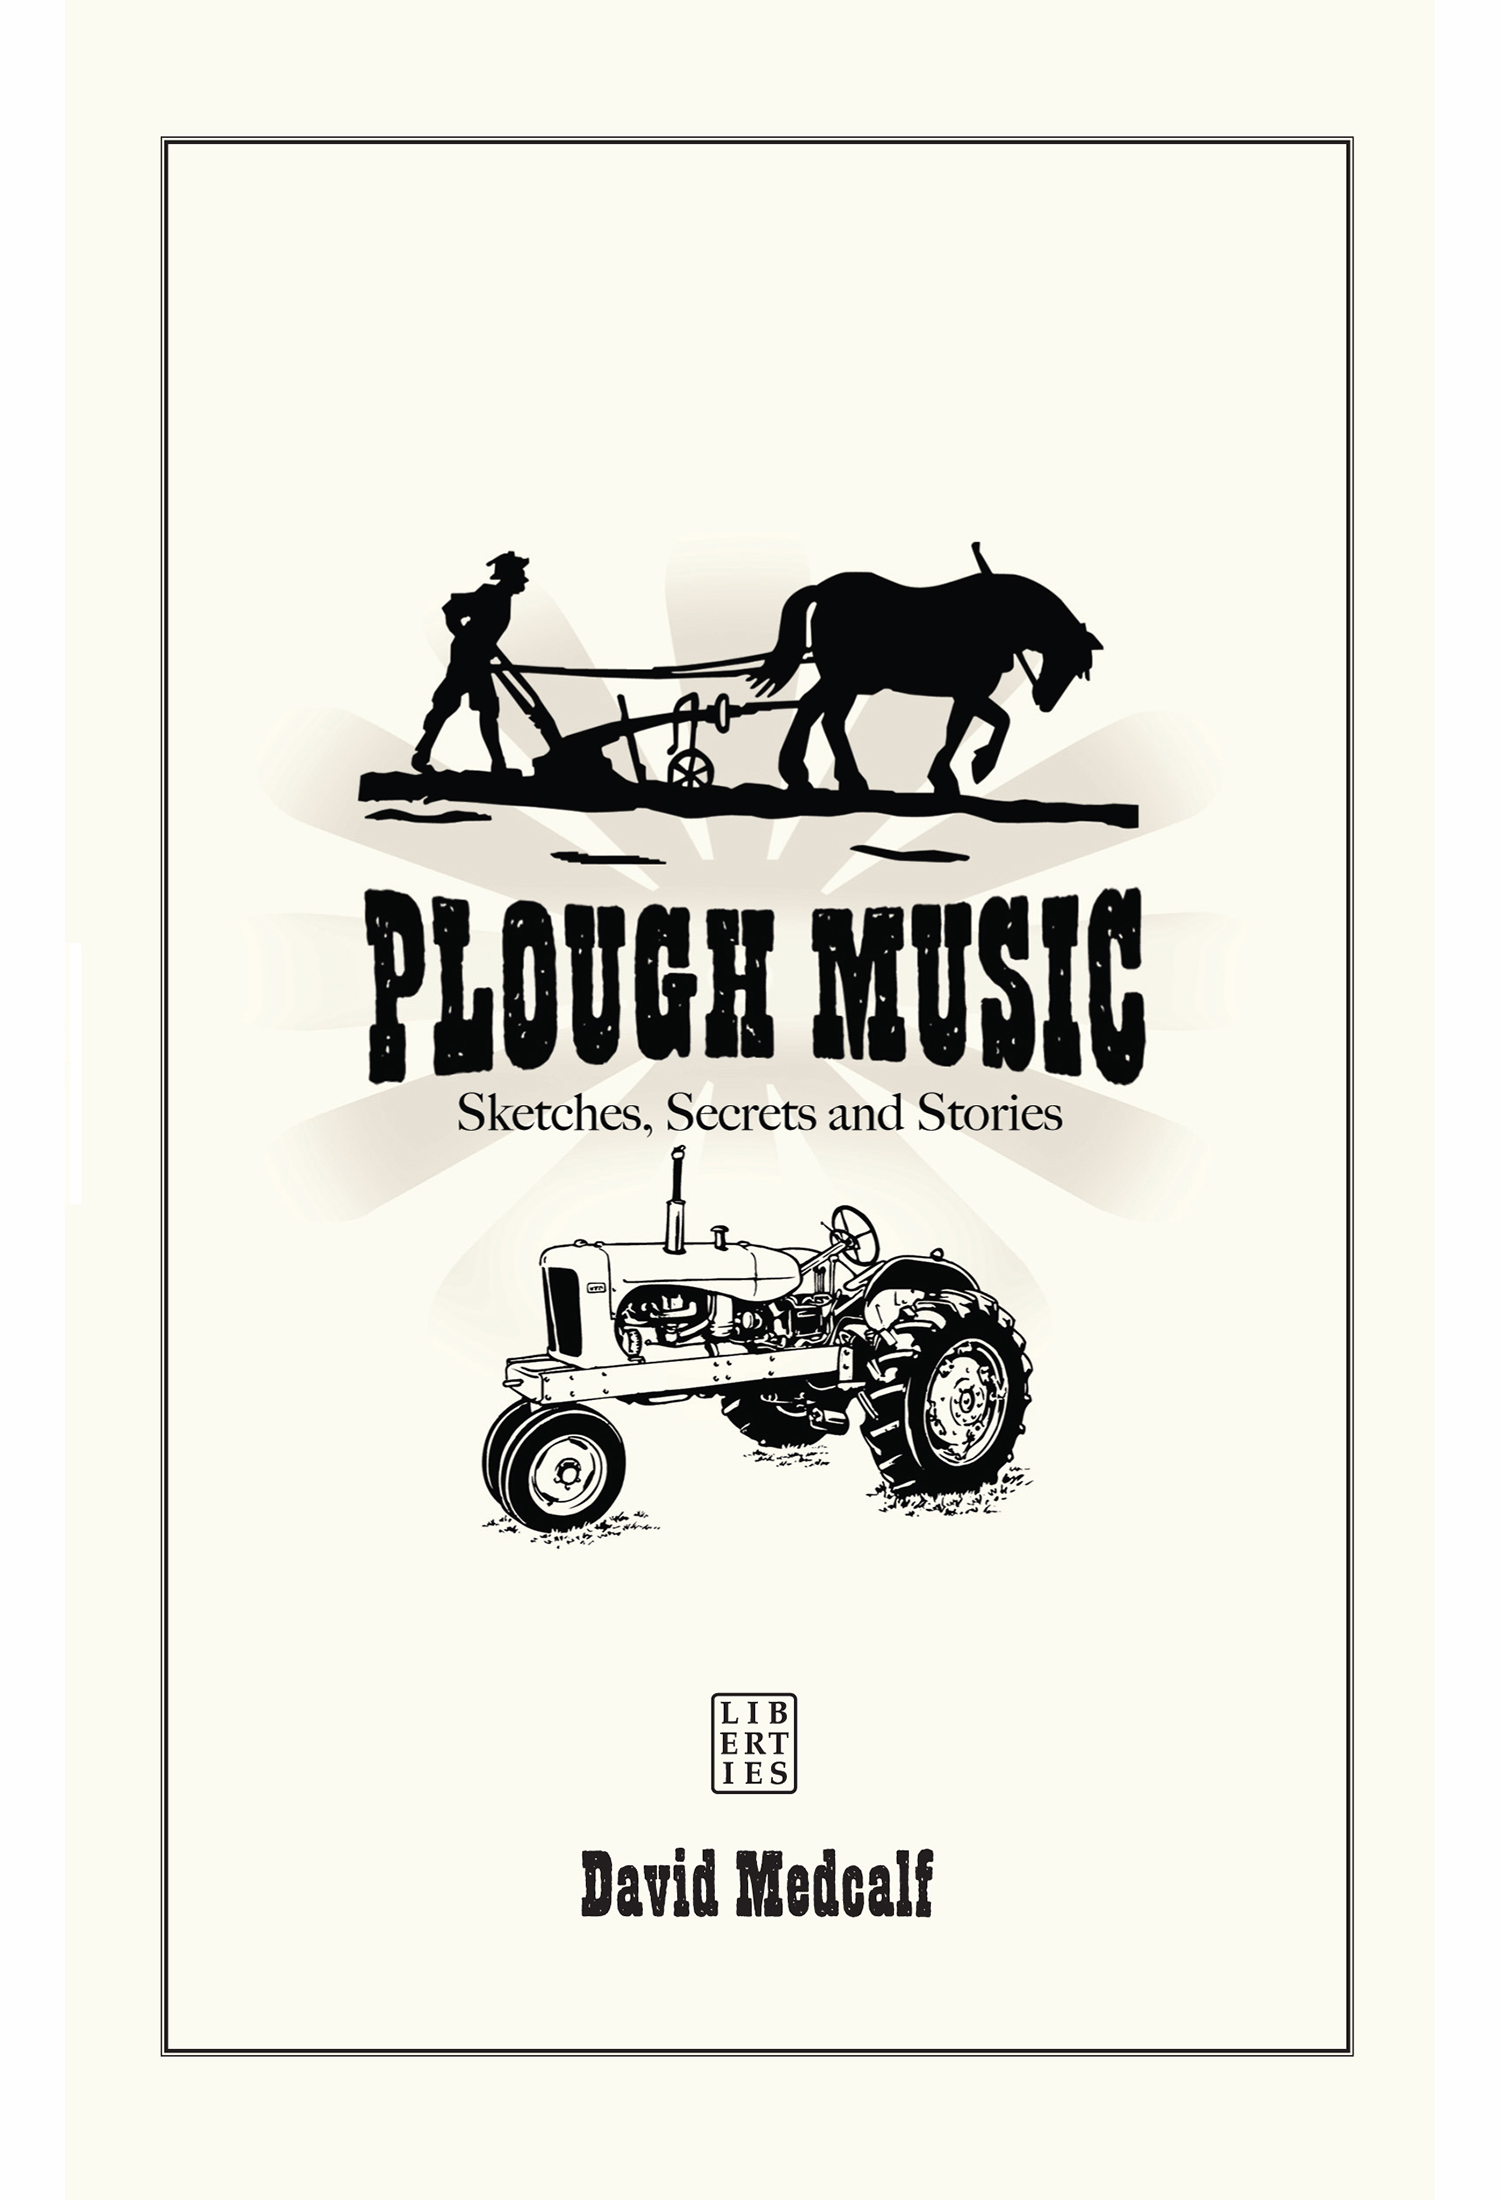 Plough music sketches secrets and stories liberties press